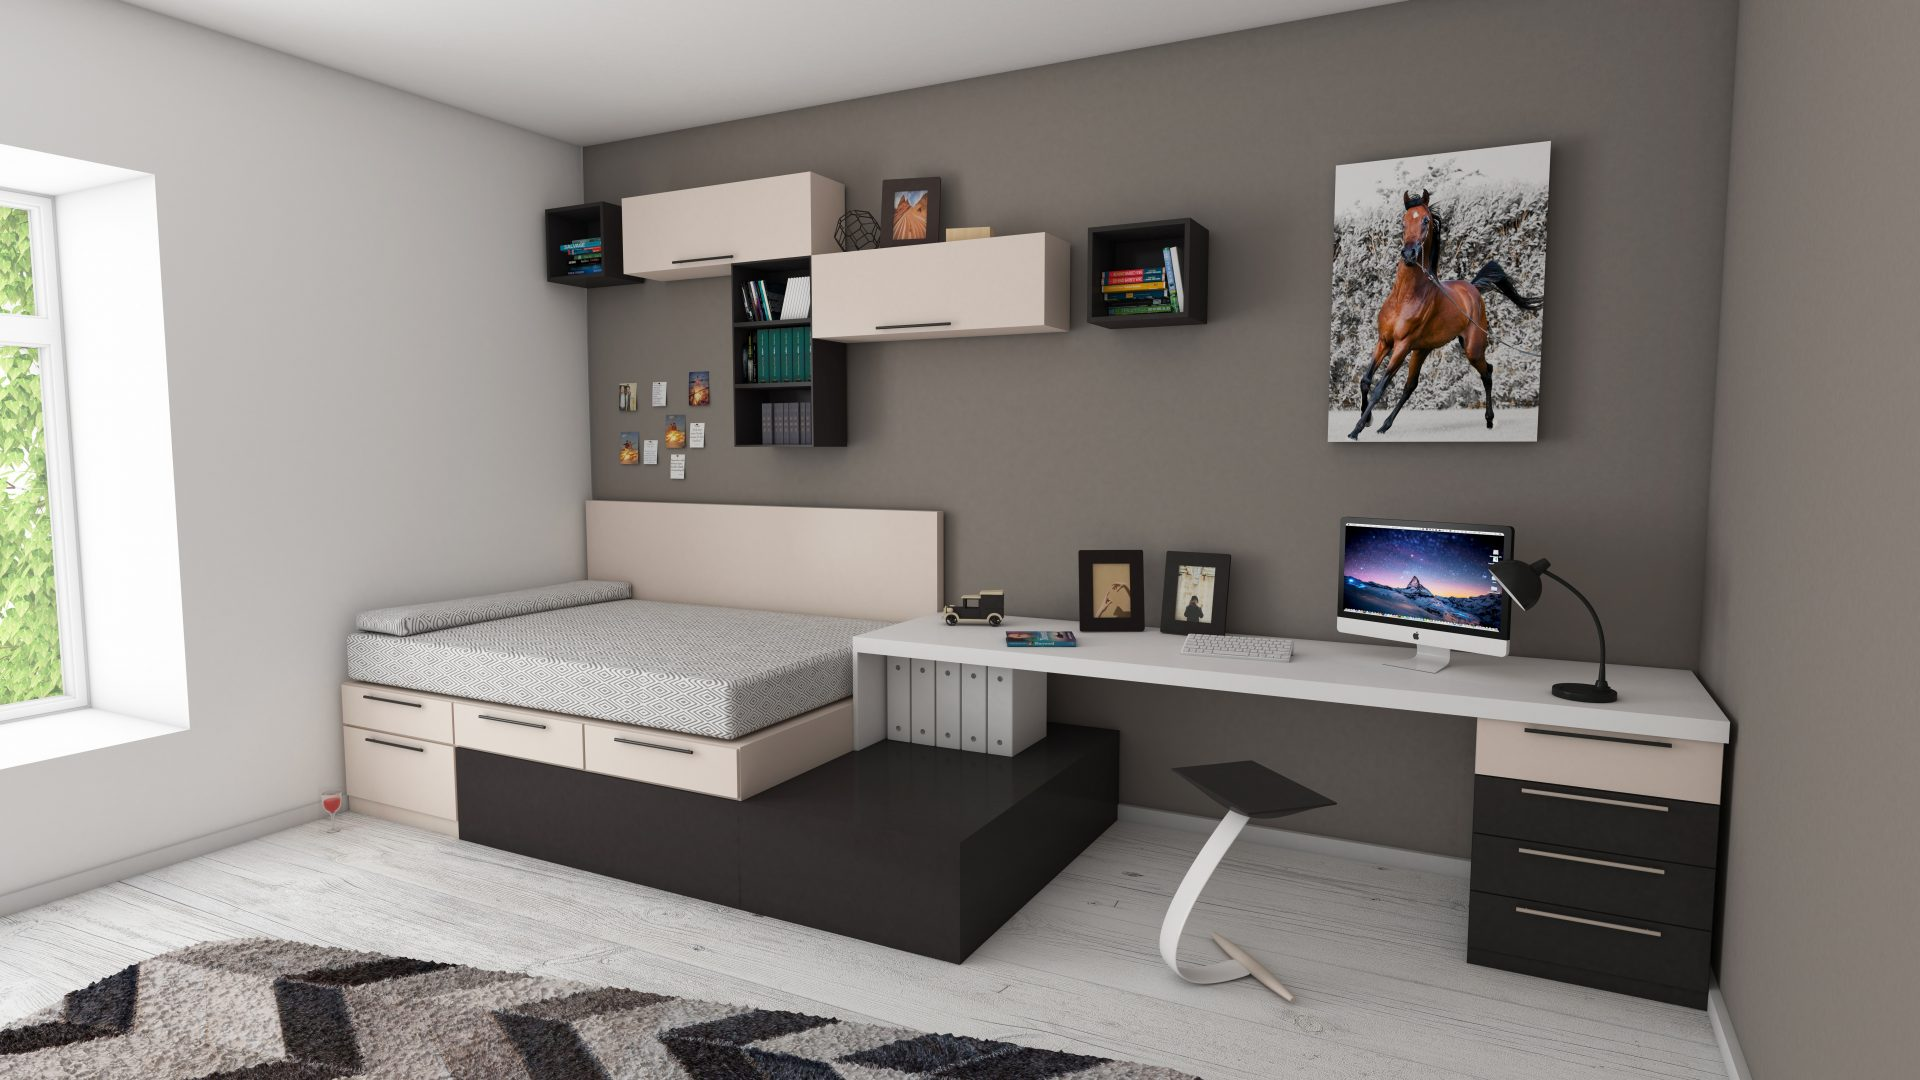 Things To Consider Before Buying Bedroom Furniture